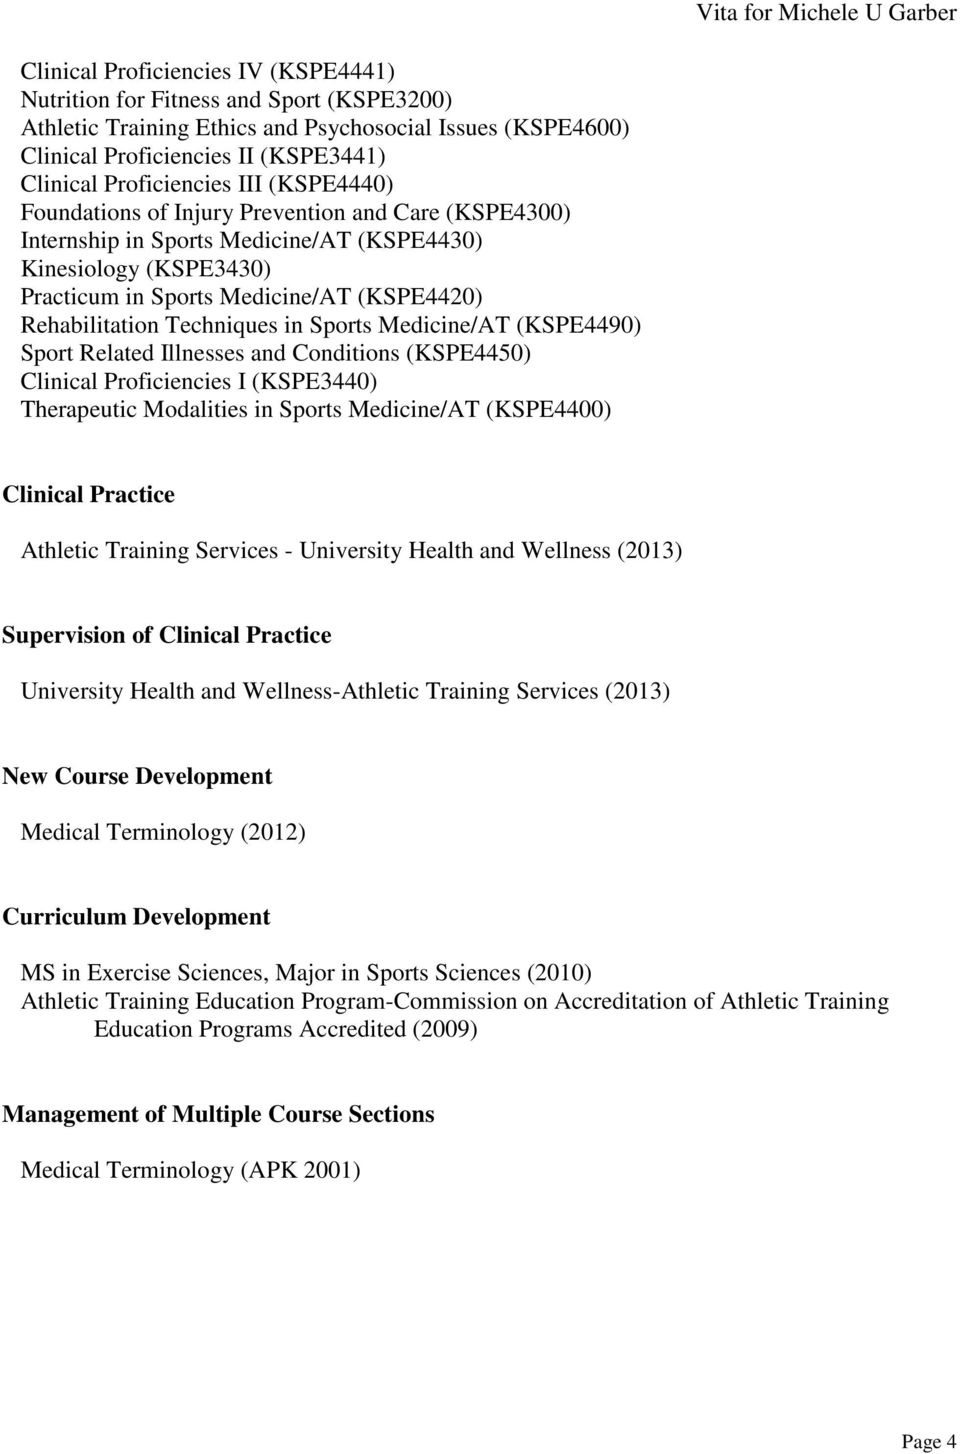 Techniques in Sports Medicine/AT (KSPE4490) Sport Related Illnesses and Conditions (KSPE4450) Clinical Proficiencies I (KSPE3440) Therapeutic Modalities in Sports Medicine/AT (KSPE4400) Clinical